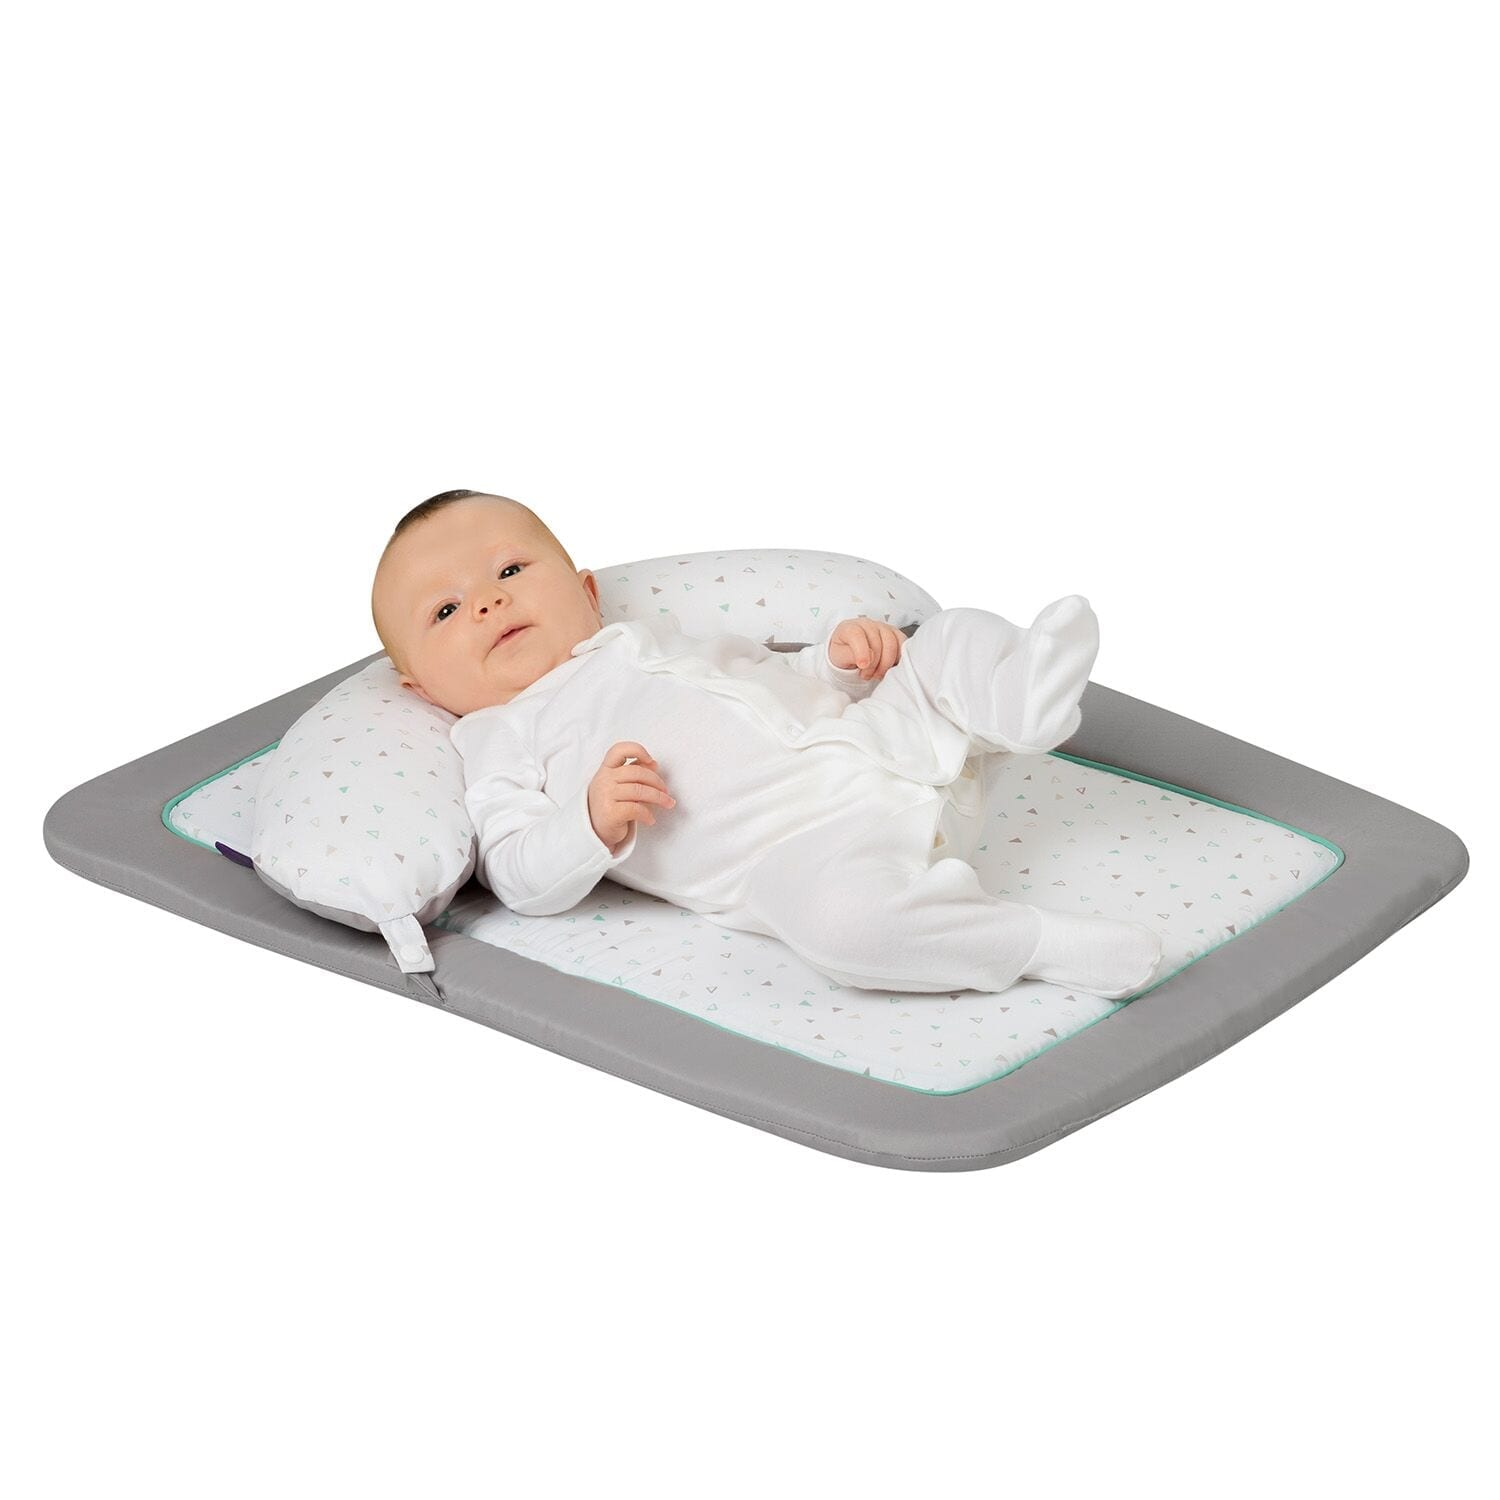 New Born Tummy Time Mat Soft Grey/Mint product image